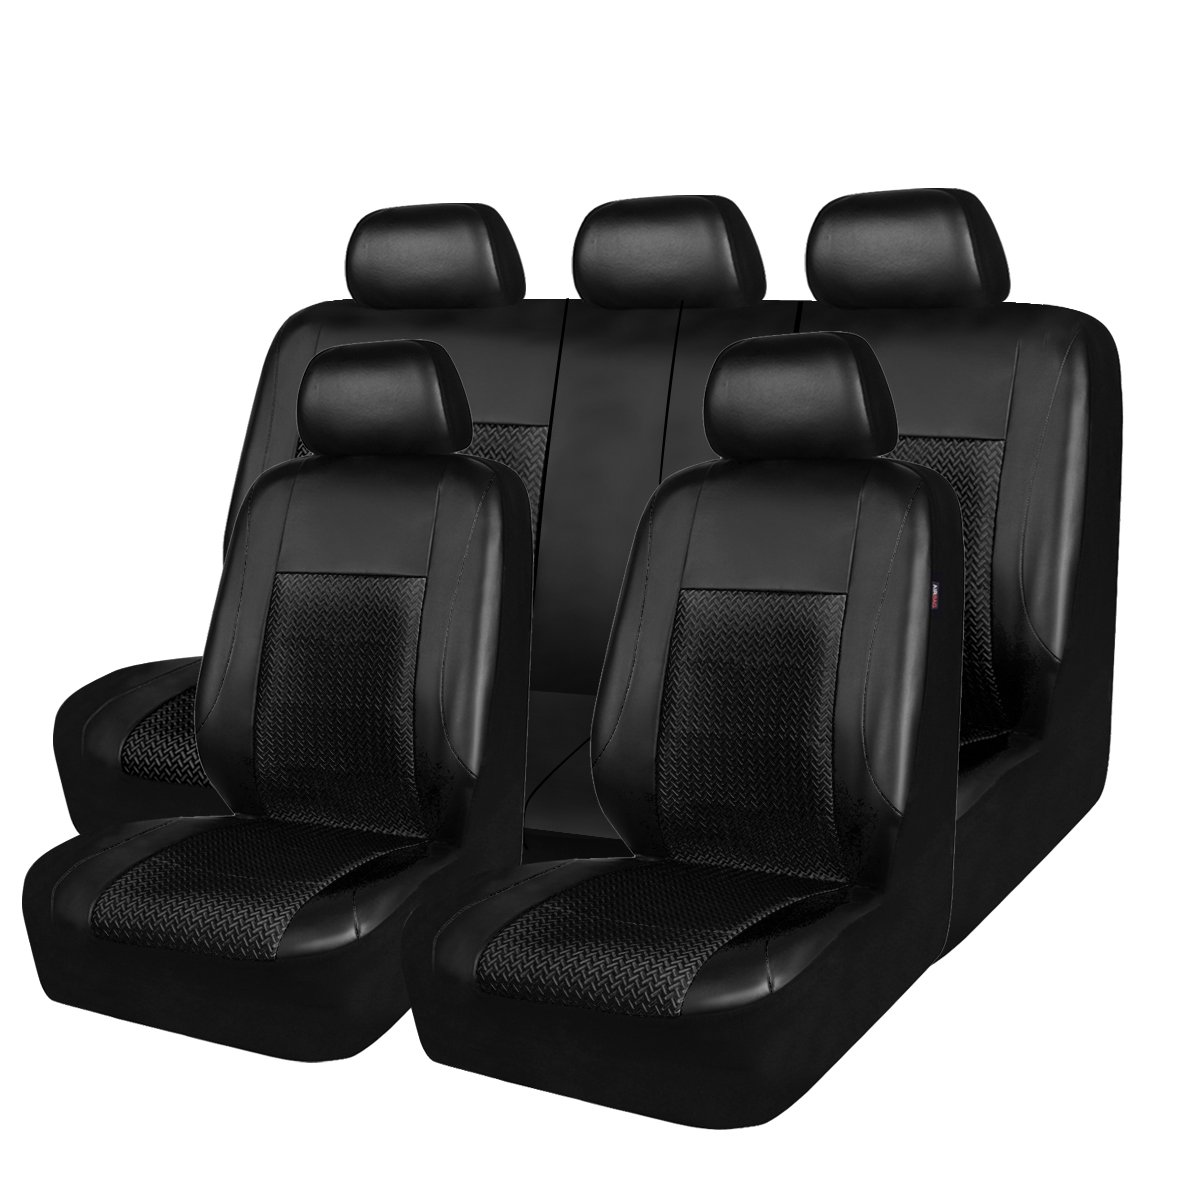 Full seat, Black red Horse KINGDM Universal Car Seat Covers Protectors Faux Leather/&Air-mesh Full Seat Airbag Compatible